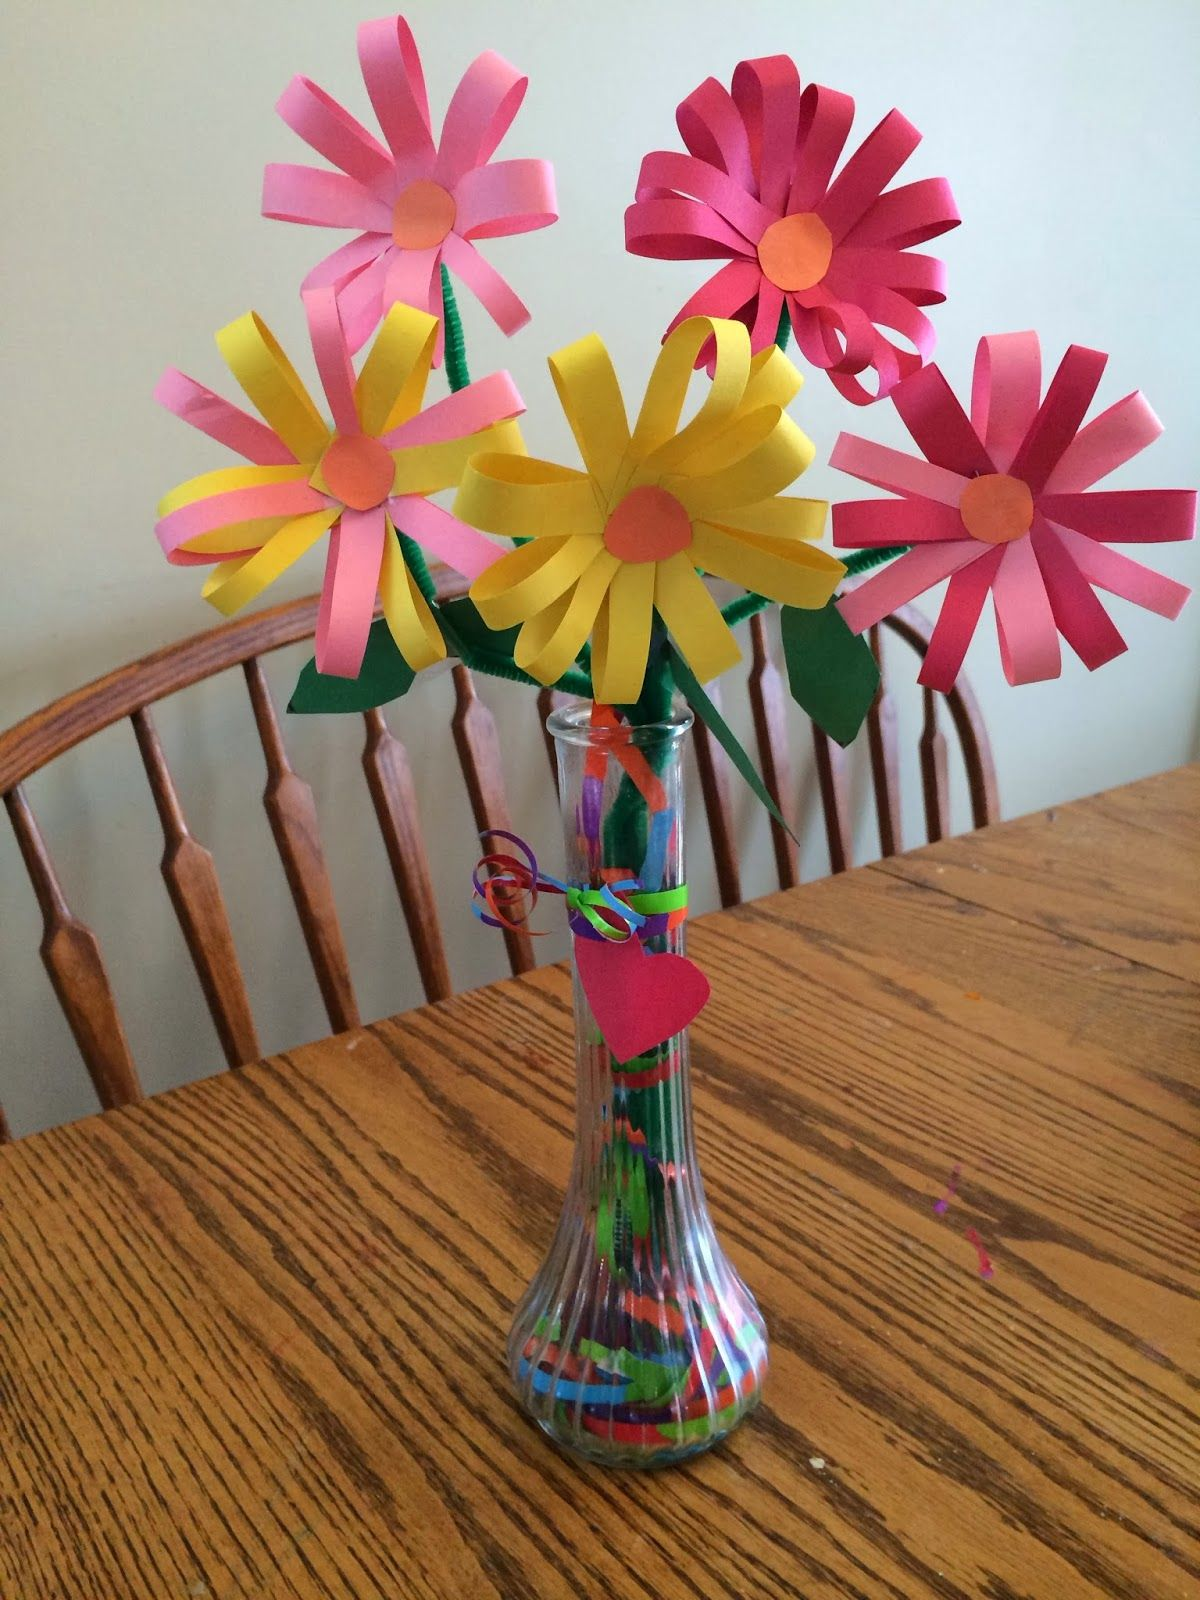 Construction Paper Flowers Vase Filled With Gift Wrap Ribbon Kid